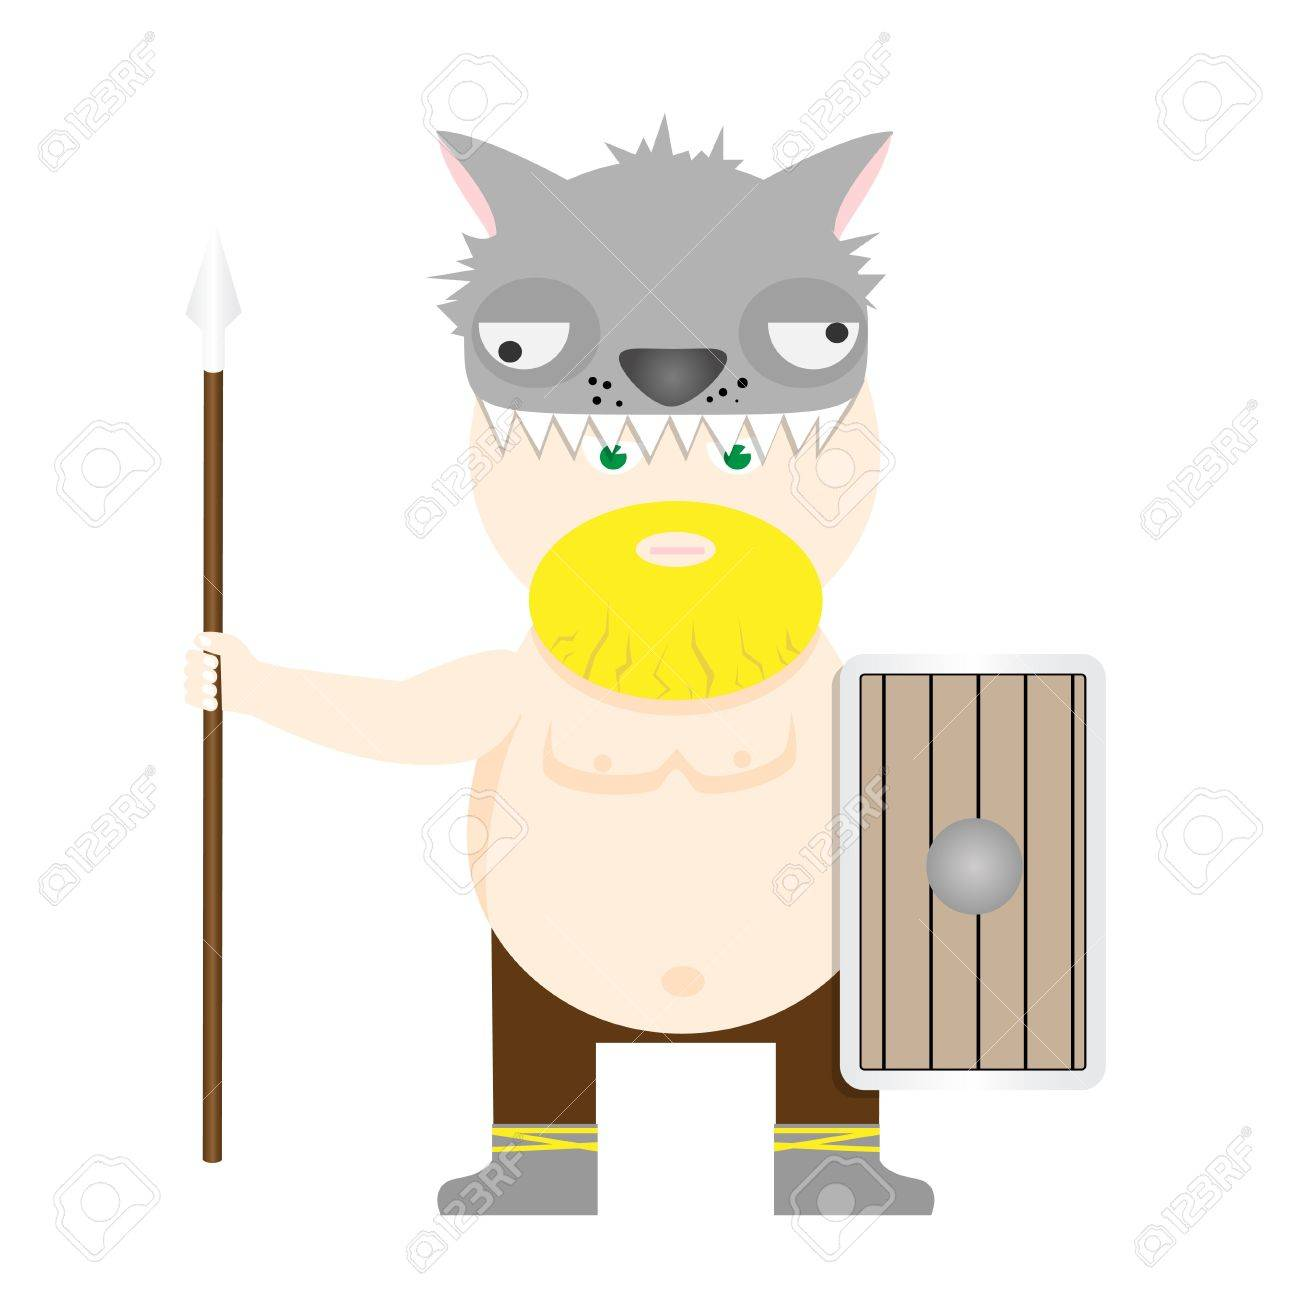 Illustration of viking with spear and shield Stock Vector - 17360812